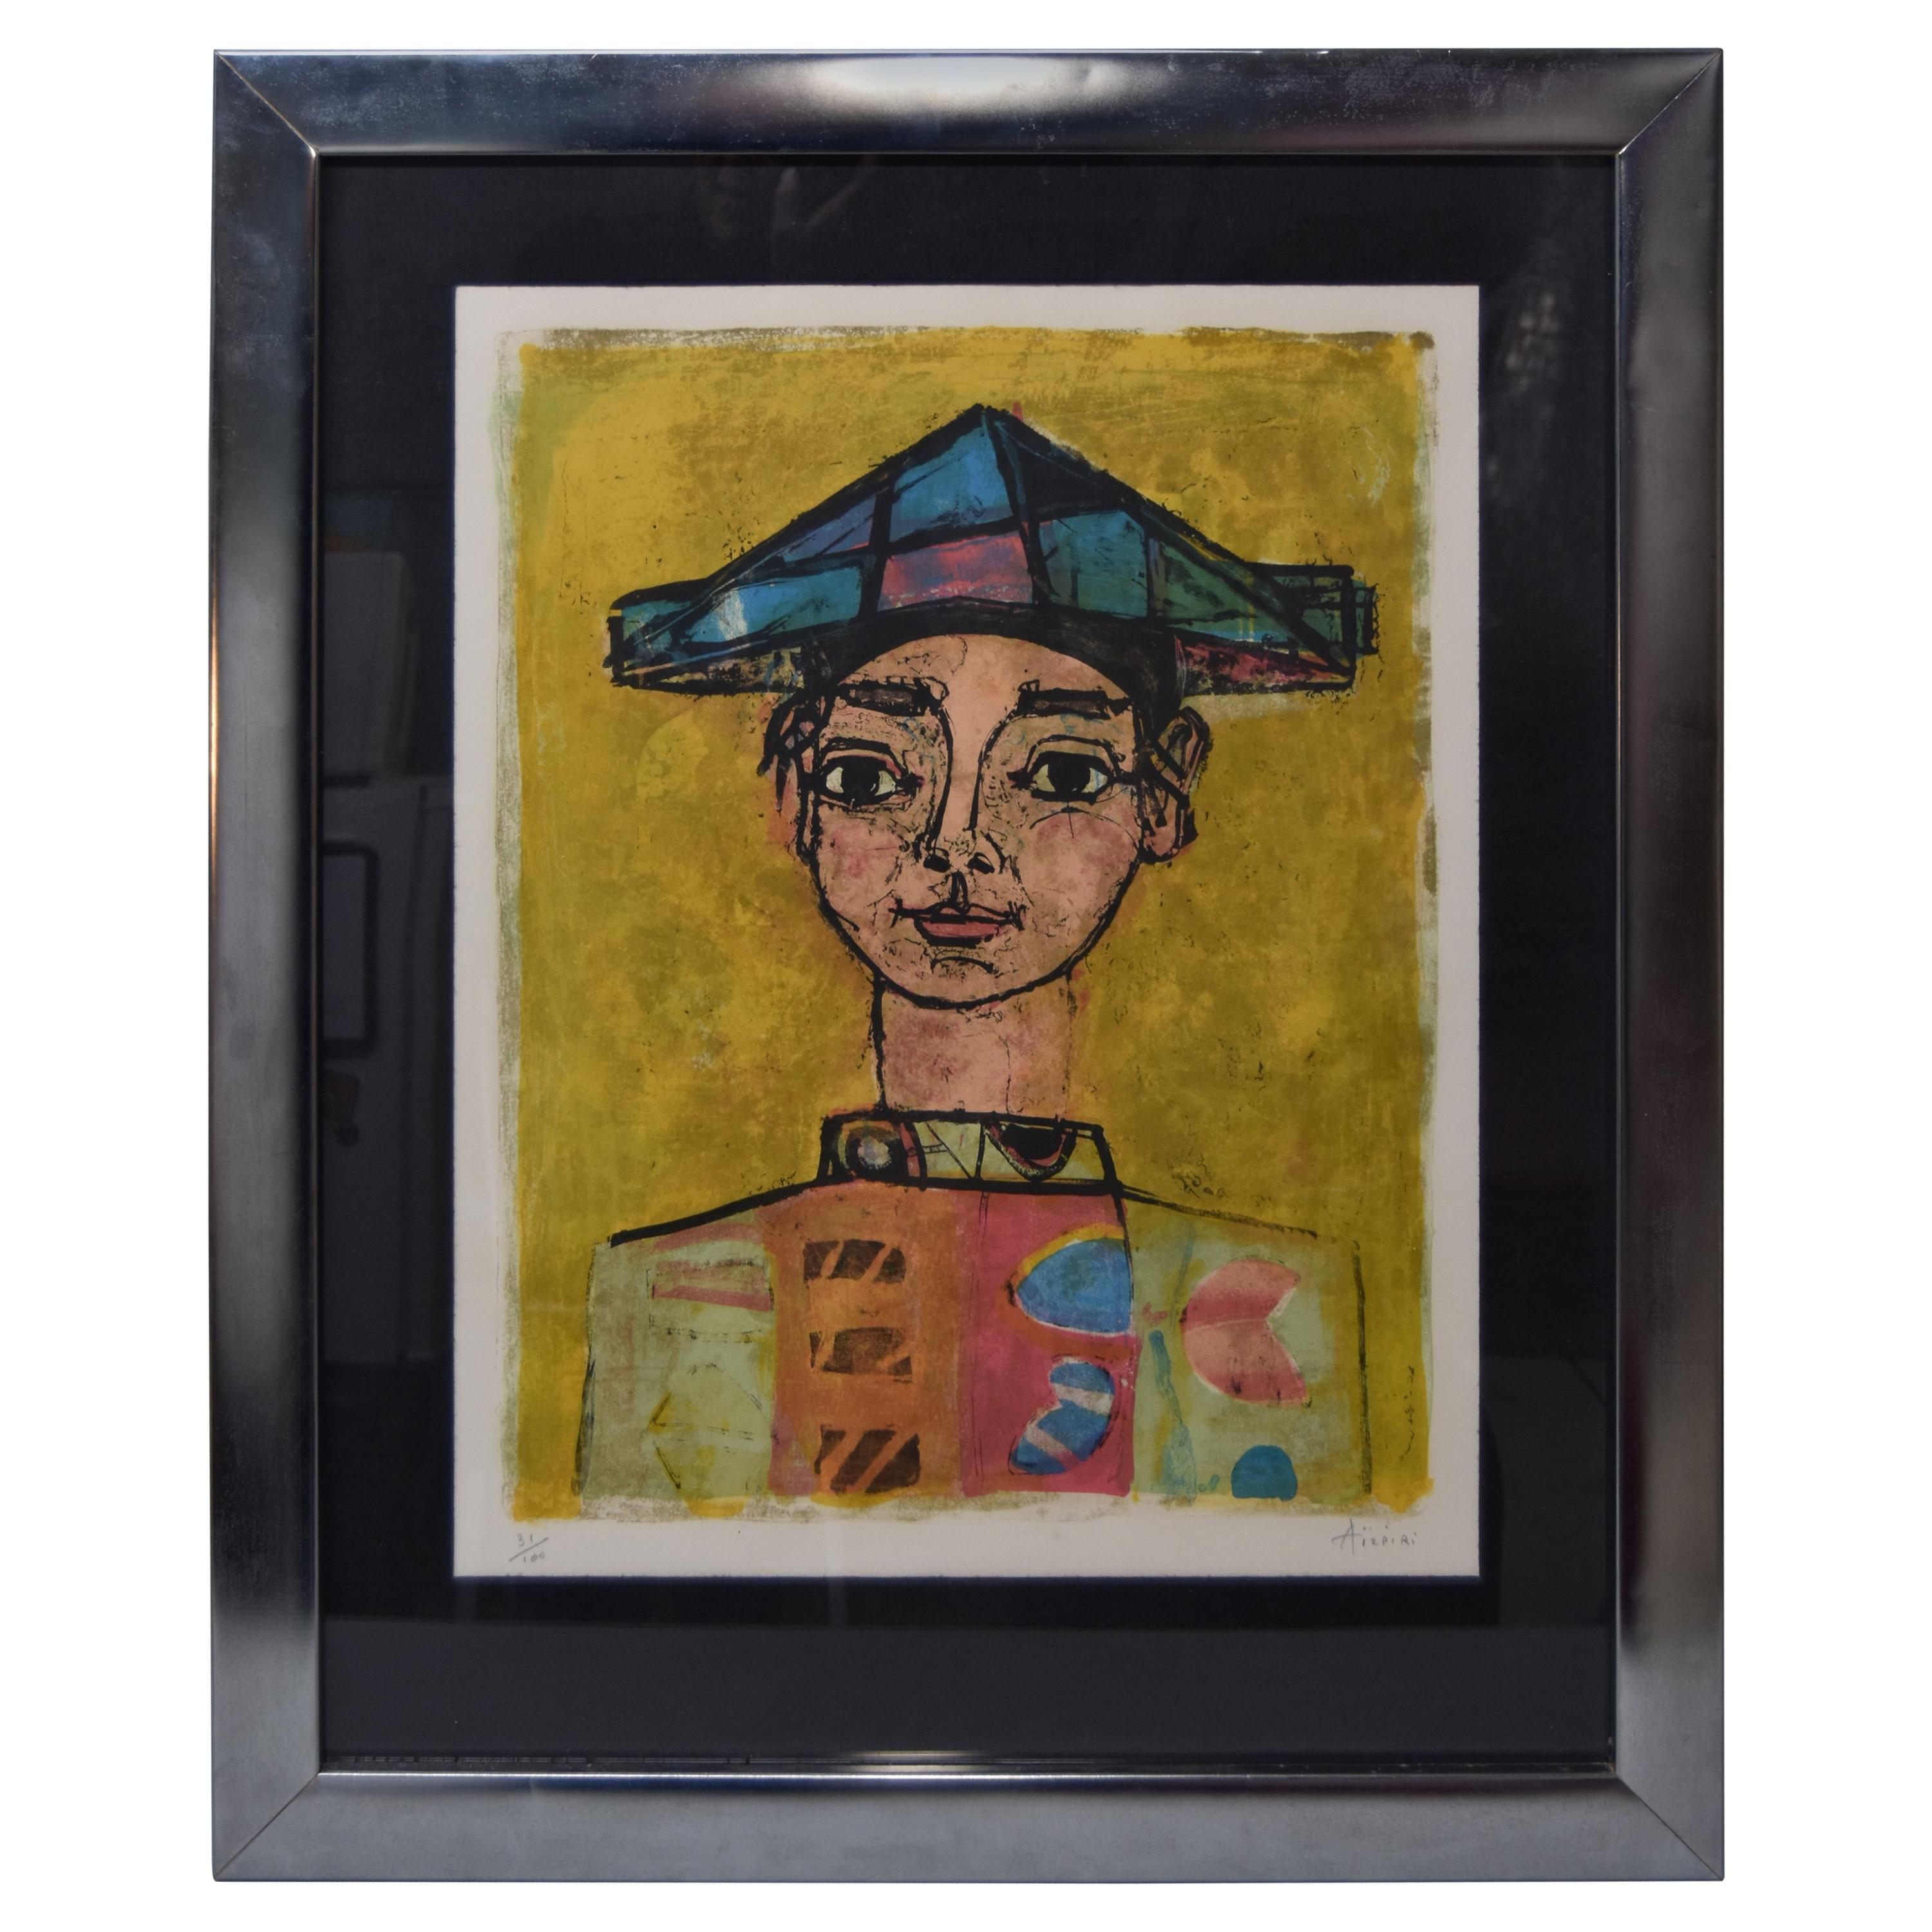 Paul Aizpiri Lithograph Young Harlequin Portrait, Limited Ed Signed and Numbered